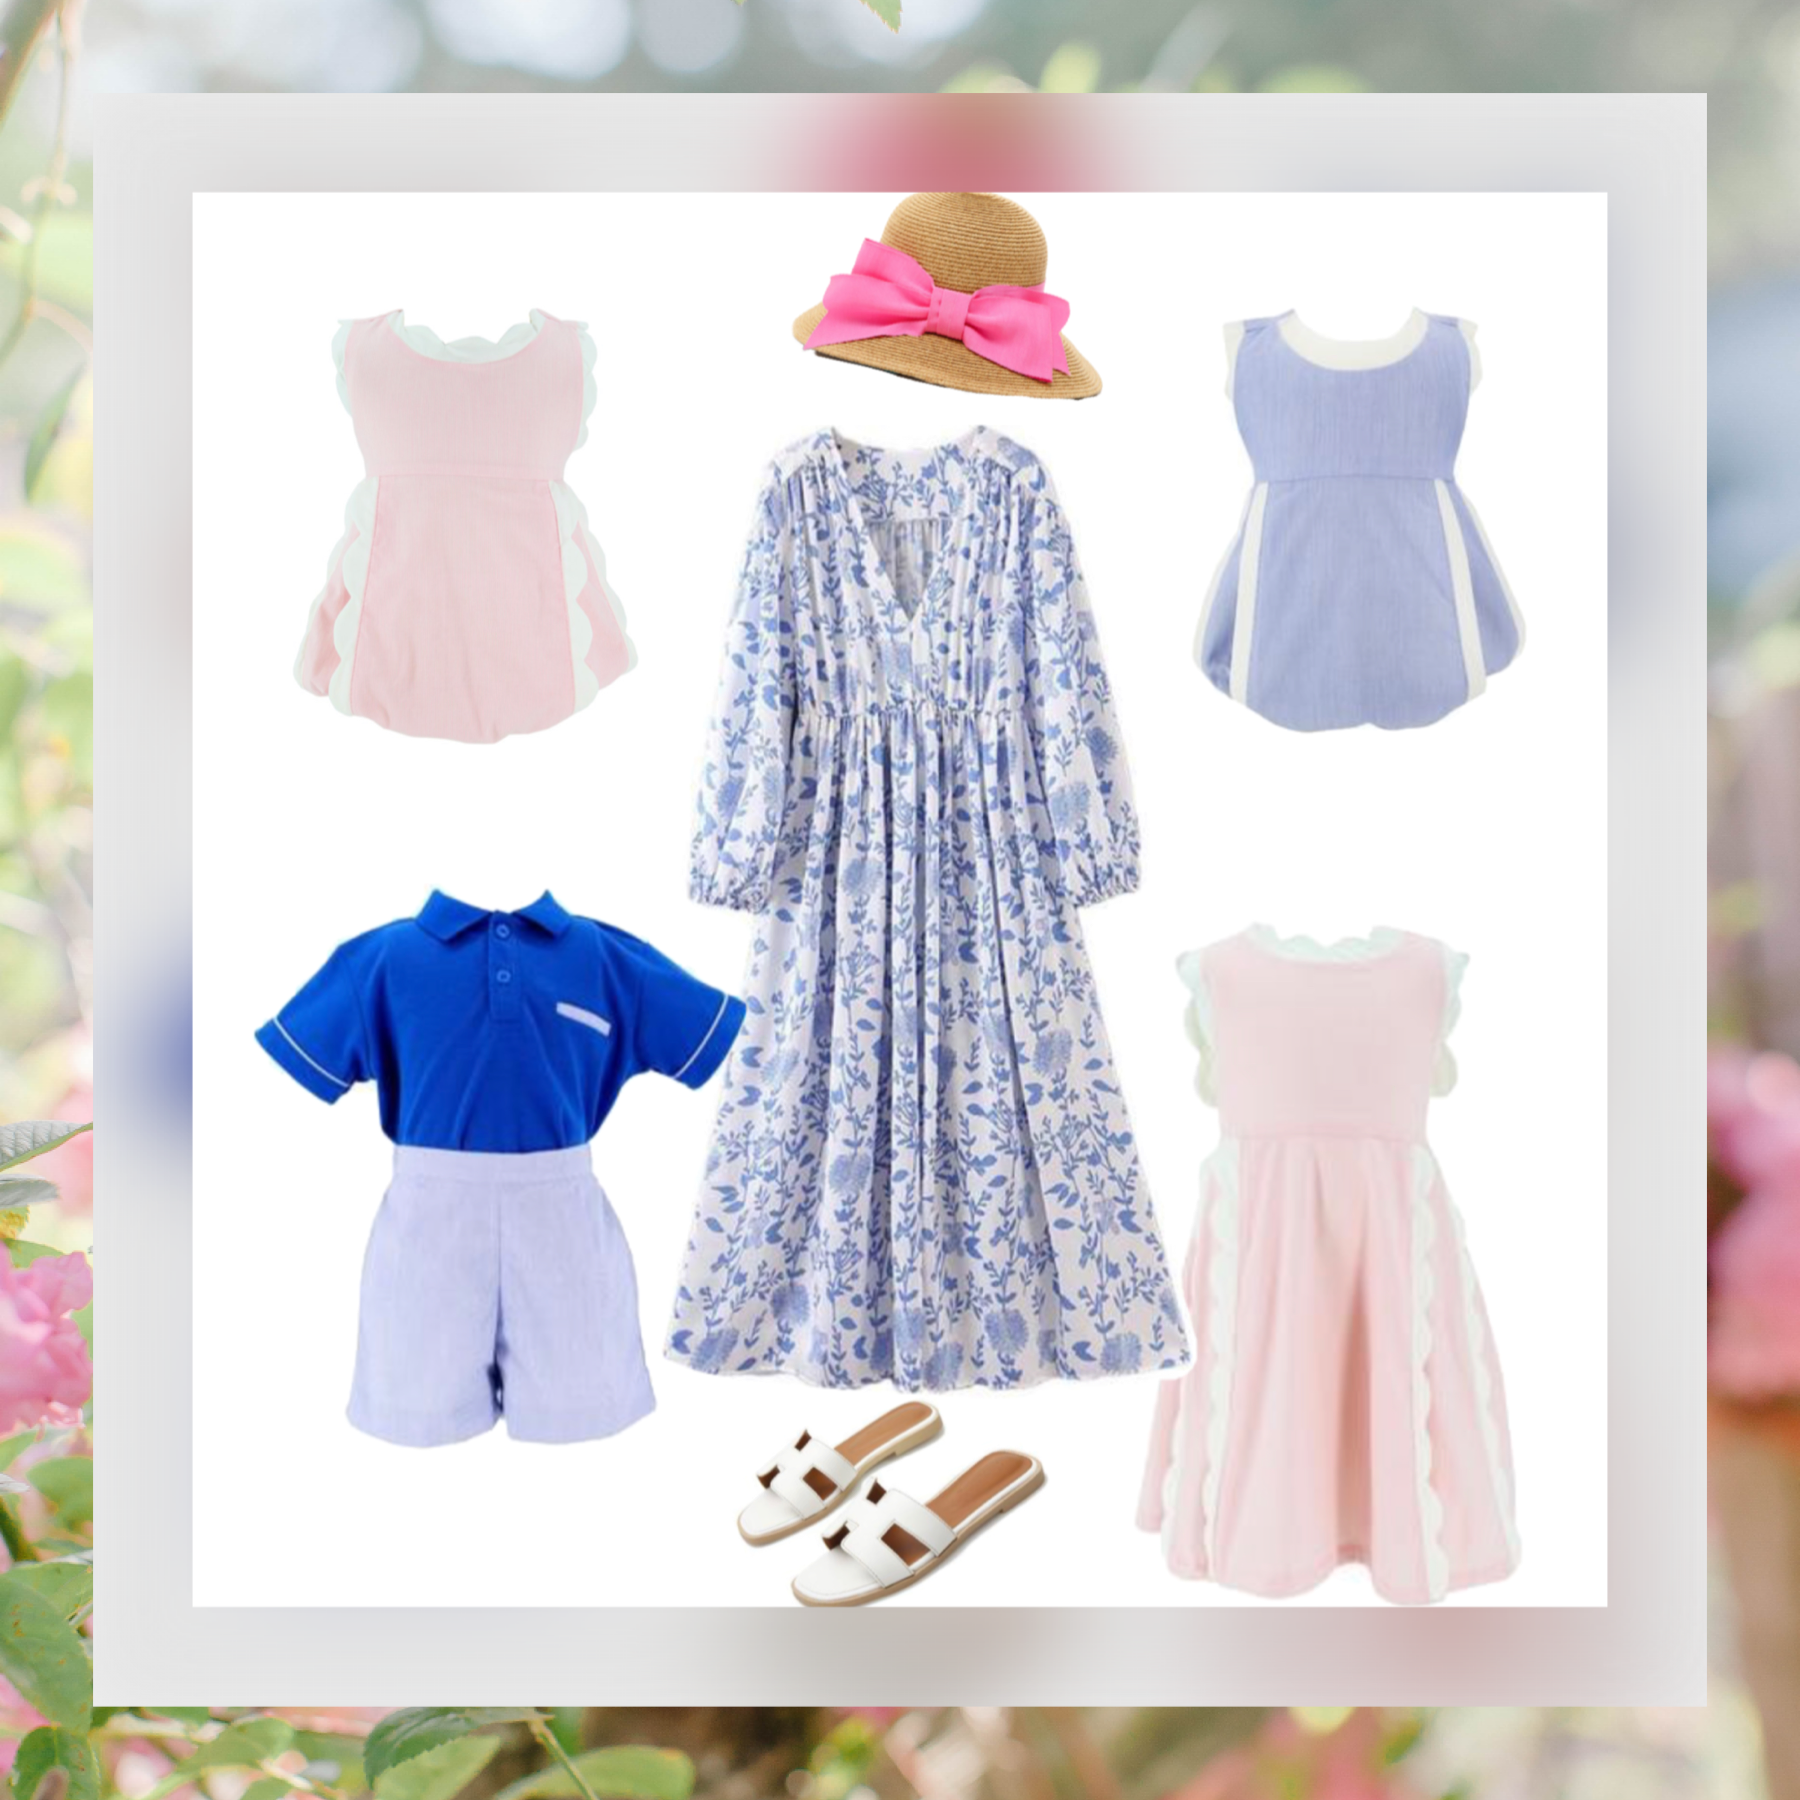 Mommy and Children Coordinating Summer Outfits